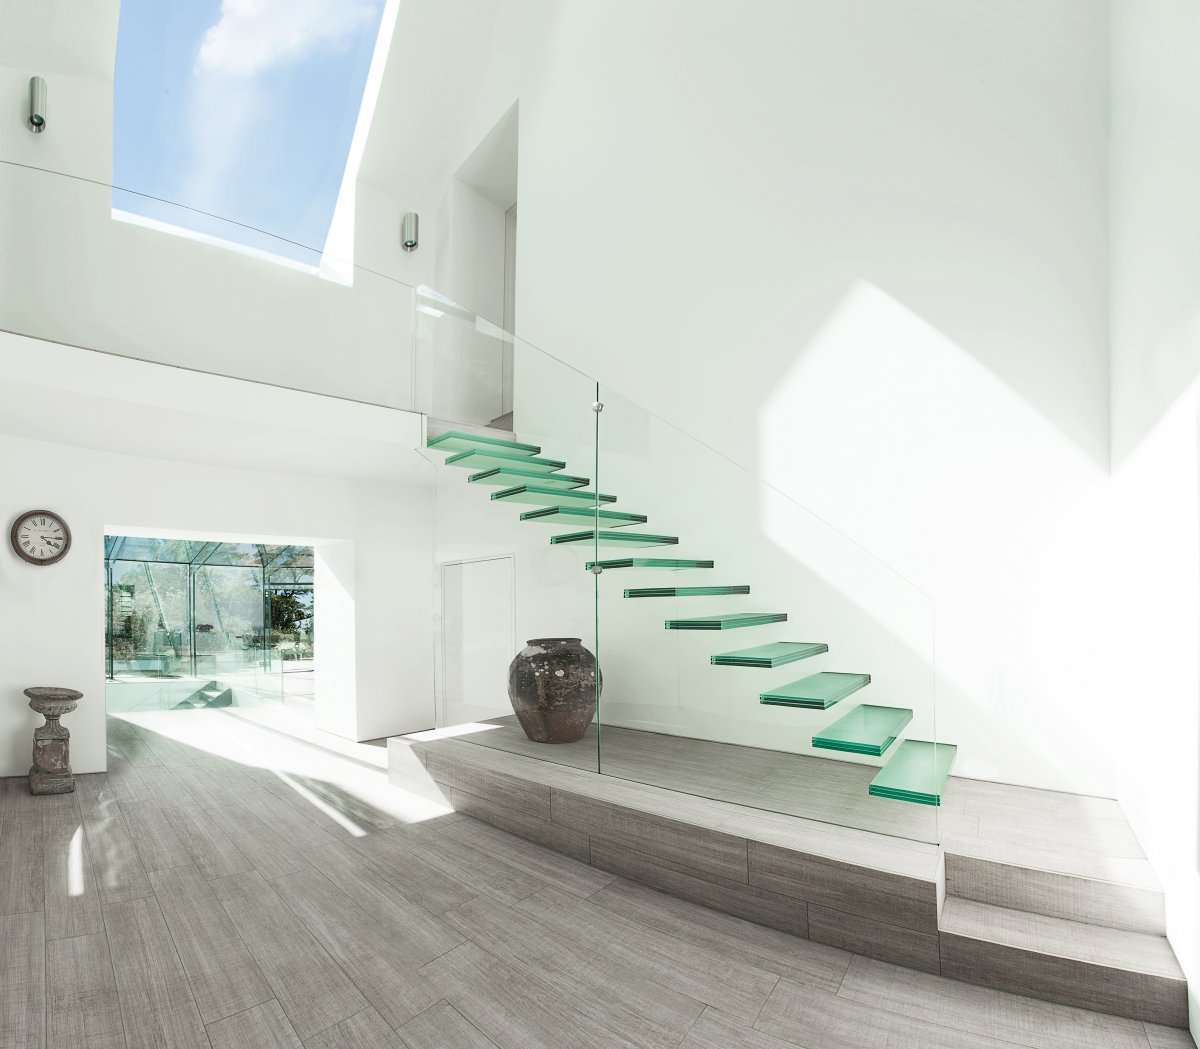 Attractive 20 Glass Staircase Wall Designs With A Graceful Impact On The Overall Decor